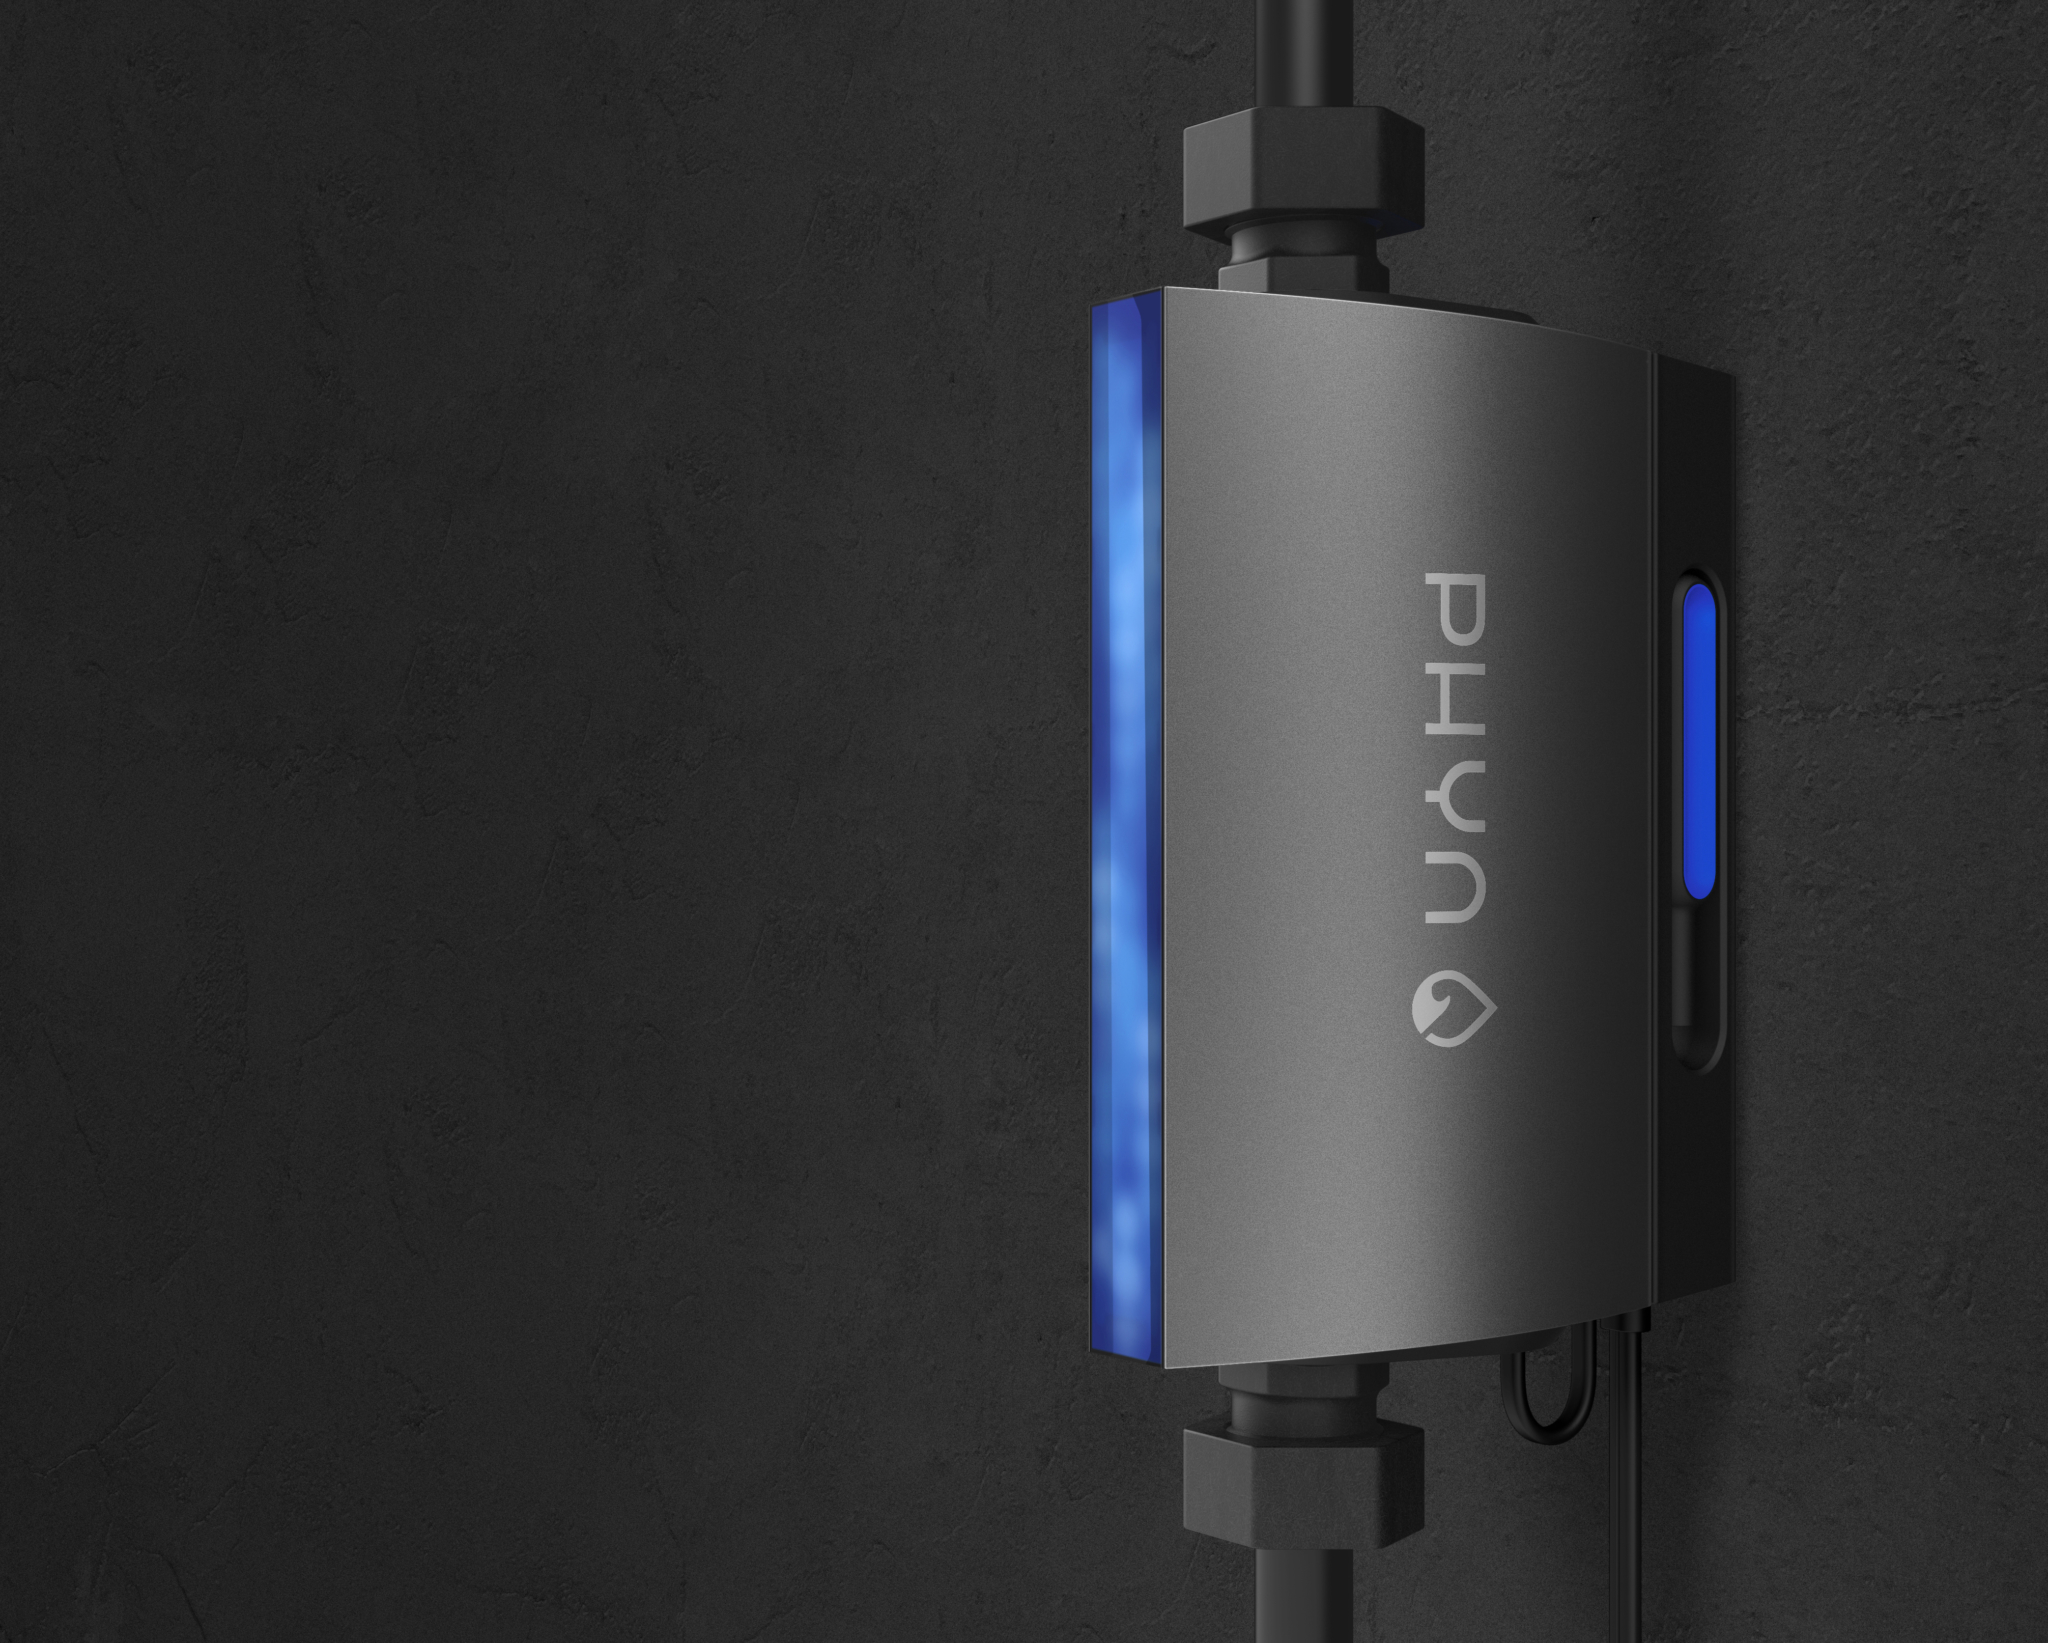 The Phyn Plus smart water assistant